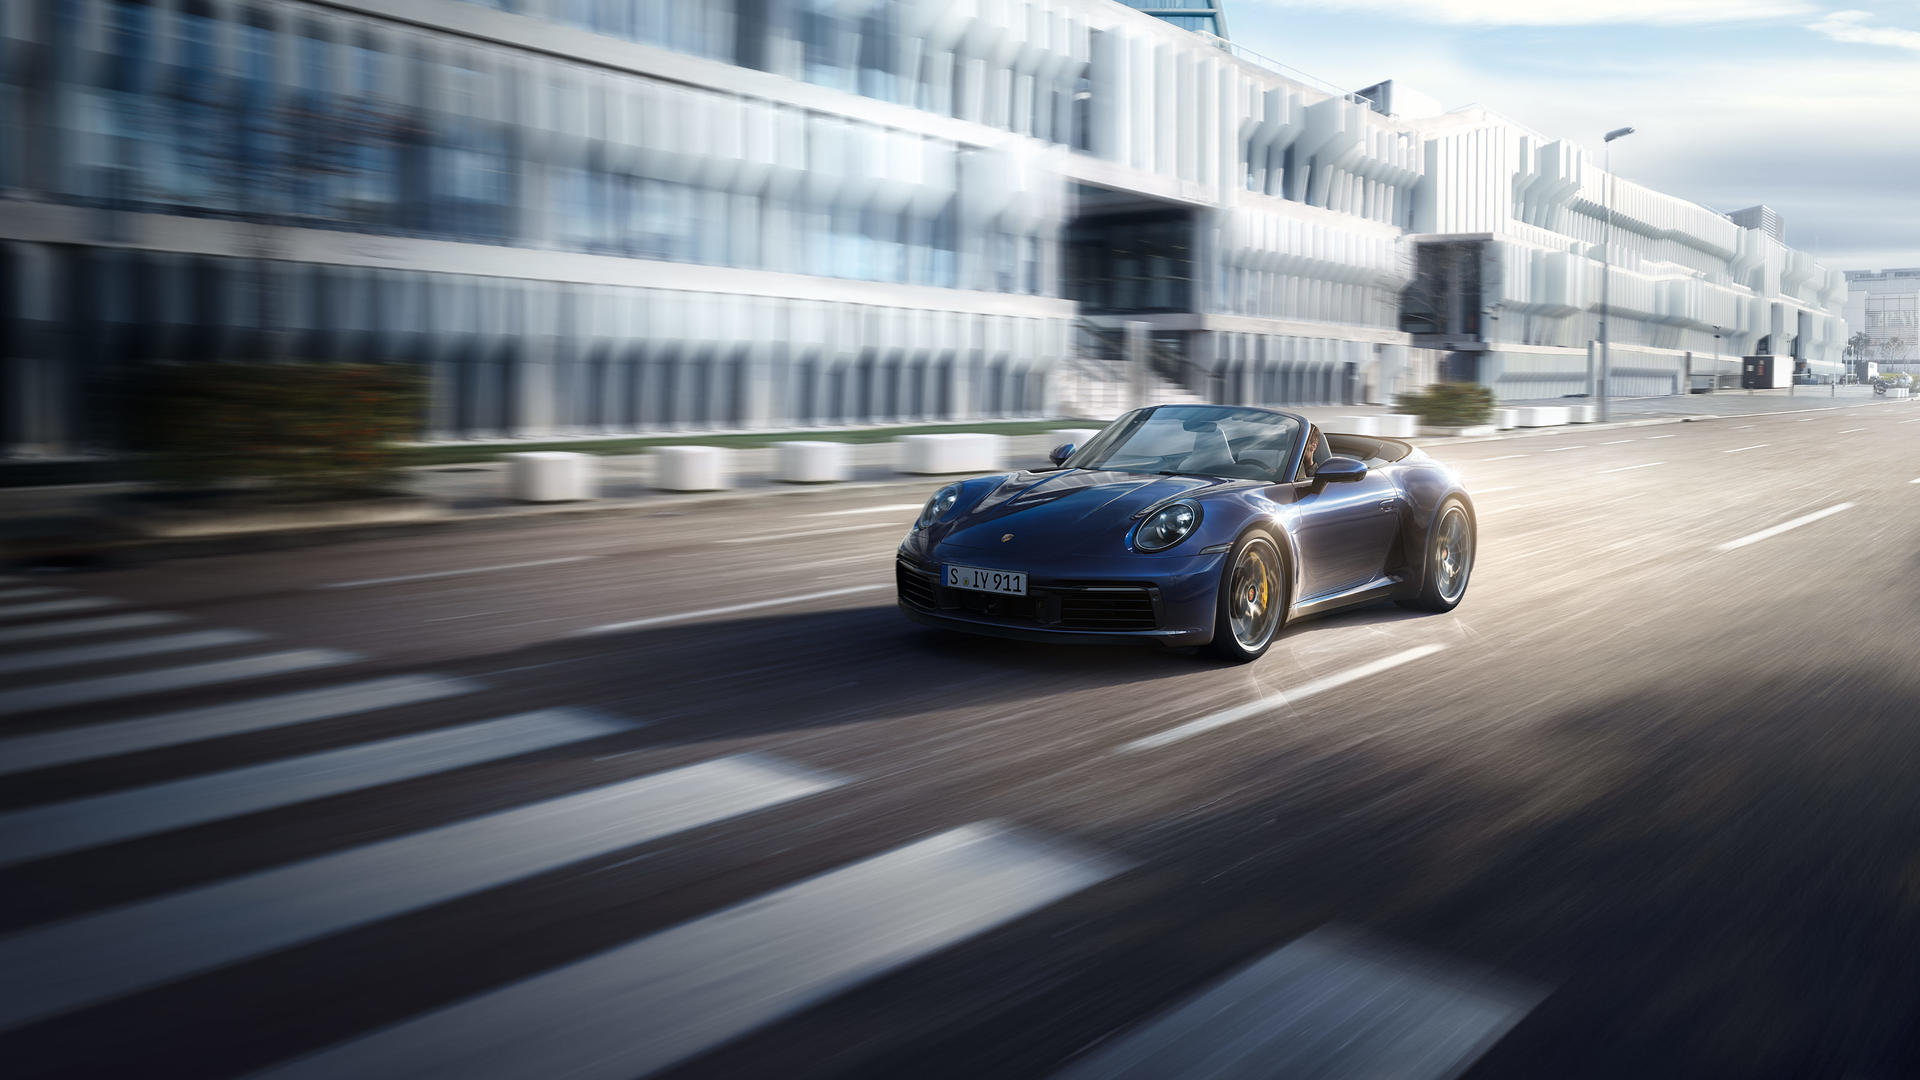 Wallpaper Of The Day 2020 Porsche 911 Cabriolet